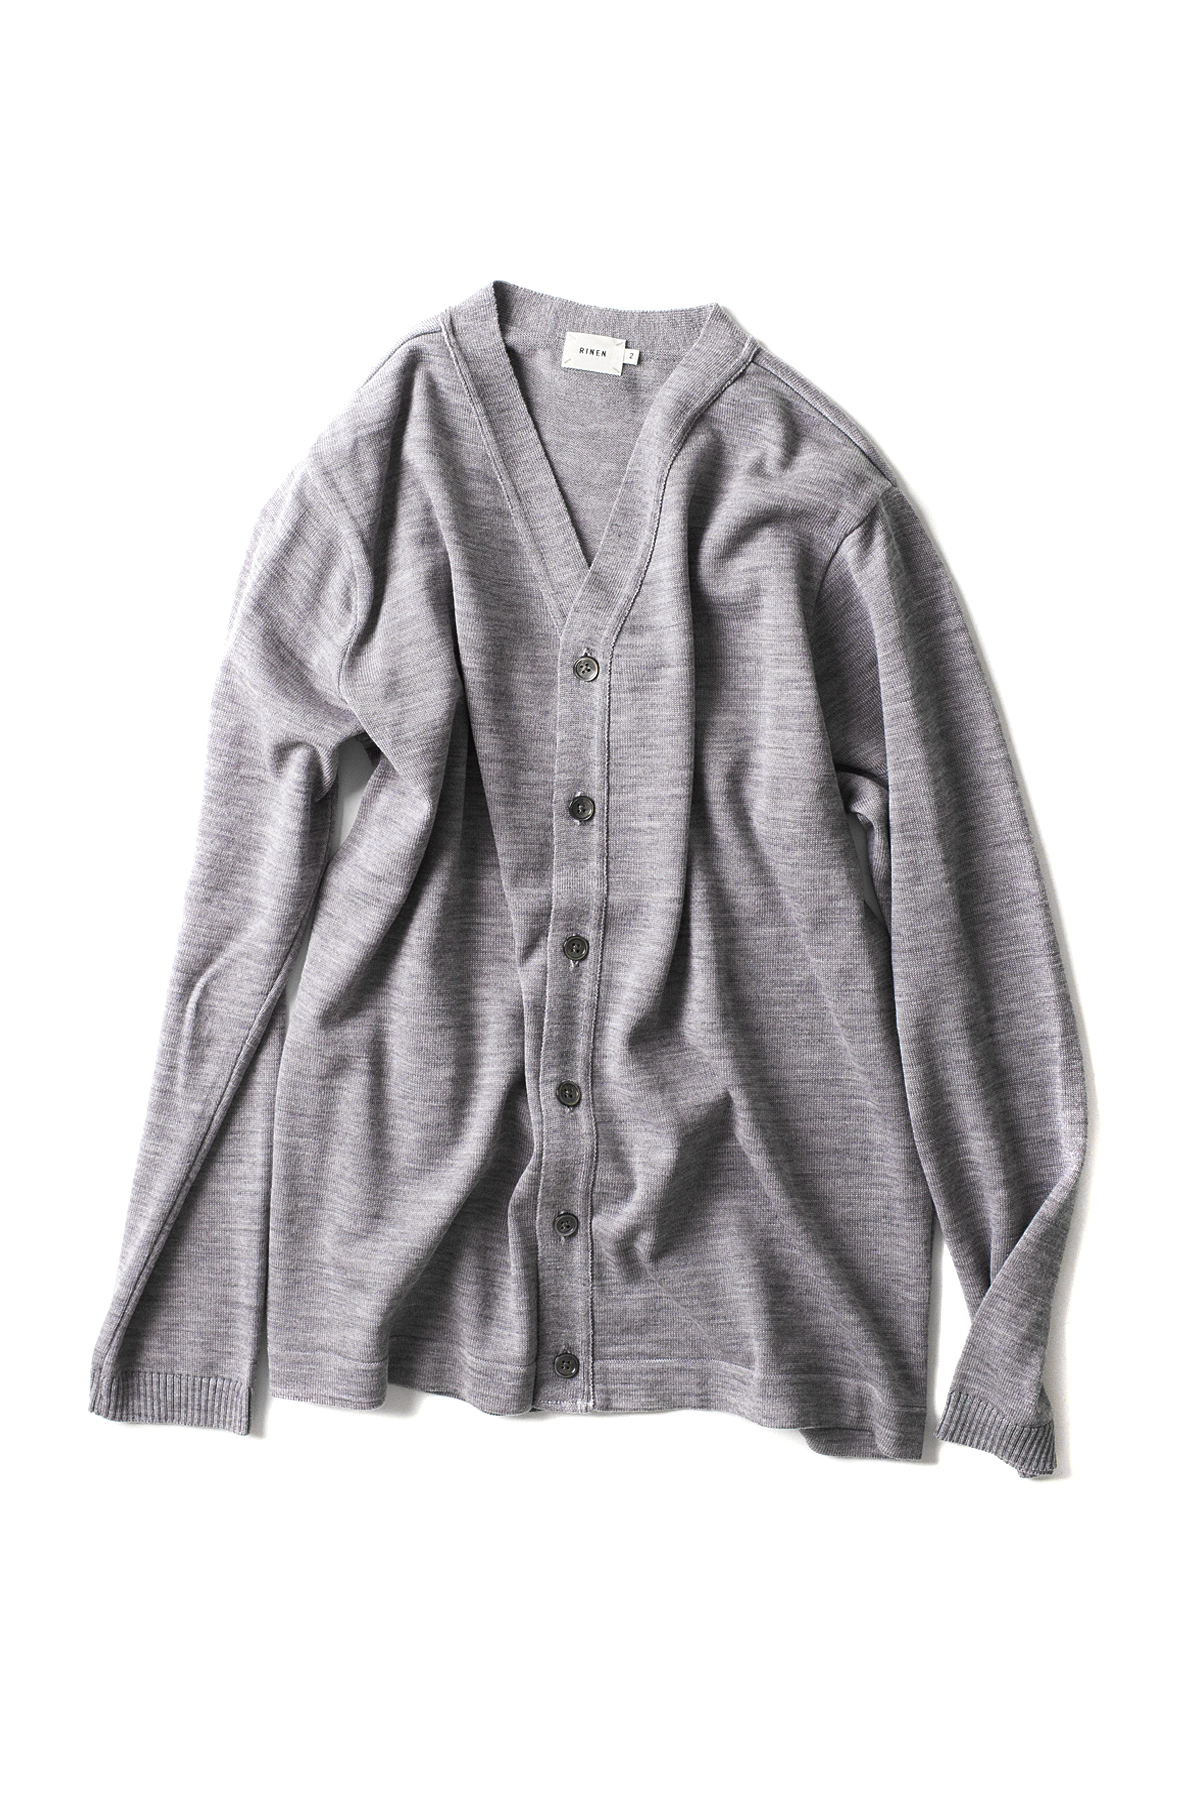 RINEN : Wool Knit Cardigan 13982 (Grey)